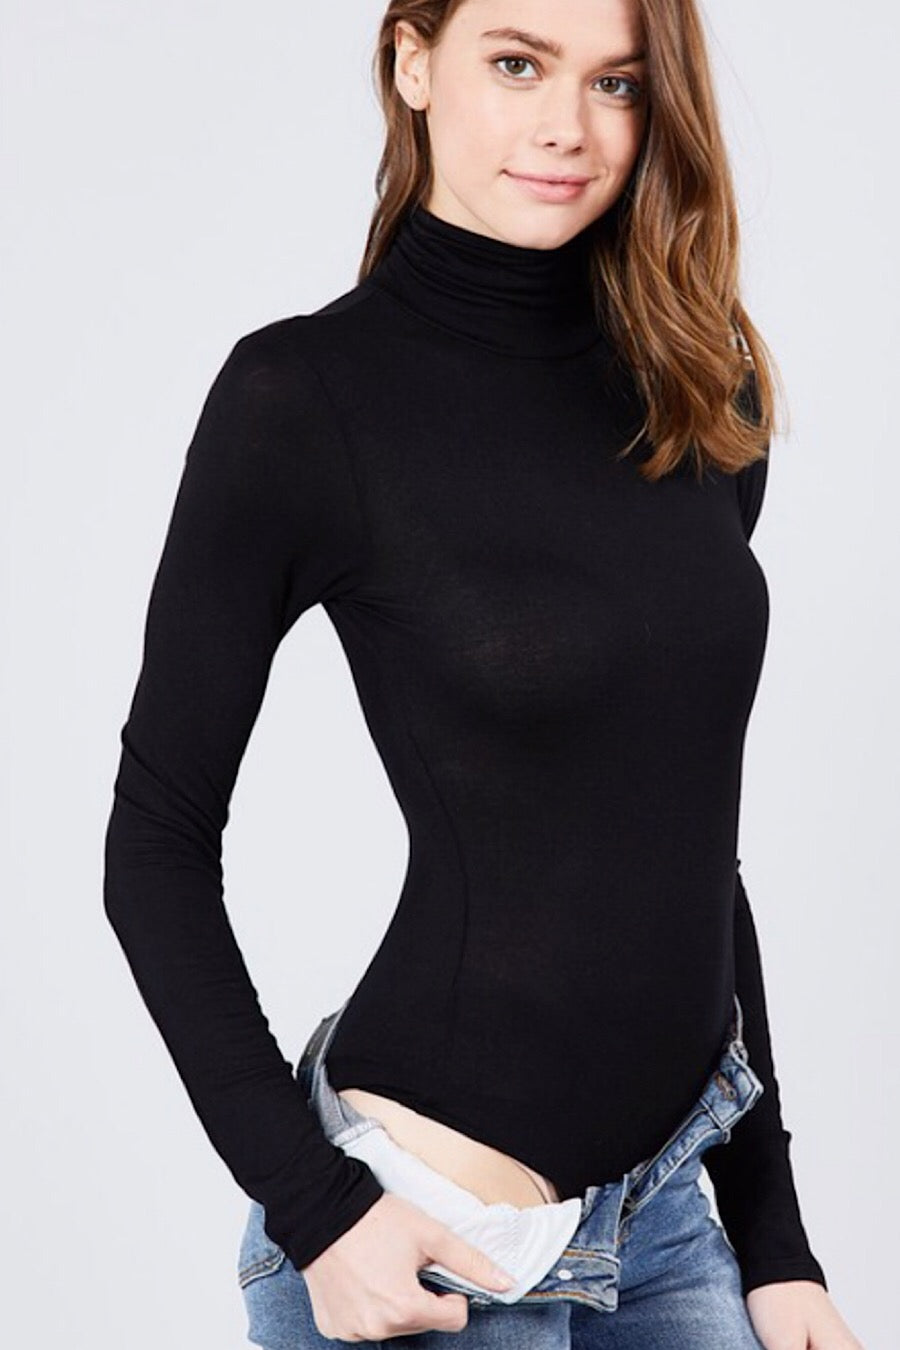 Turtleneck Jersey Bodysuit in Black or White